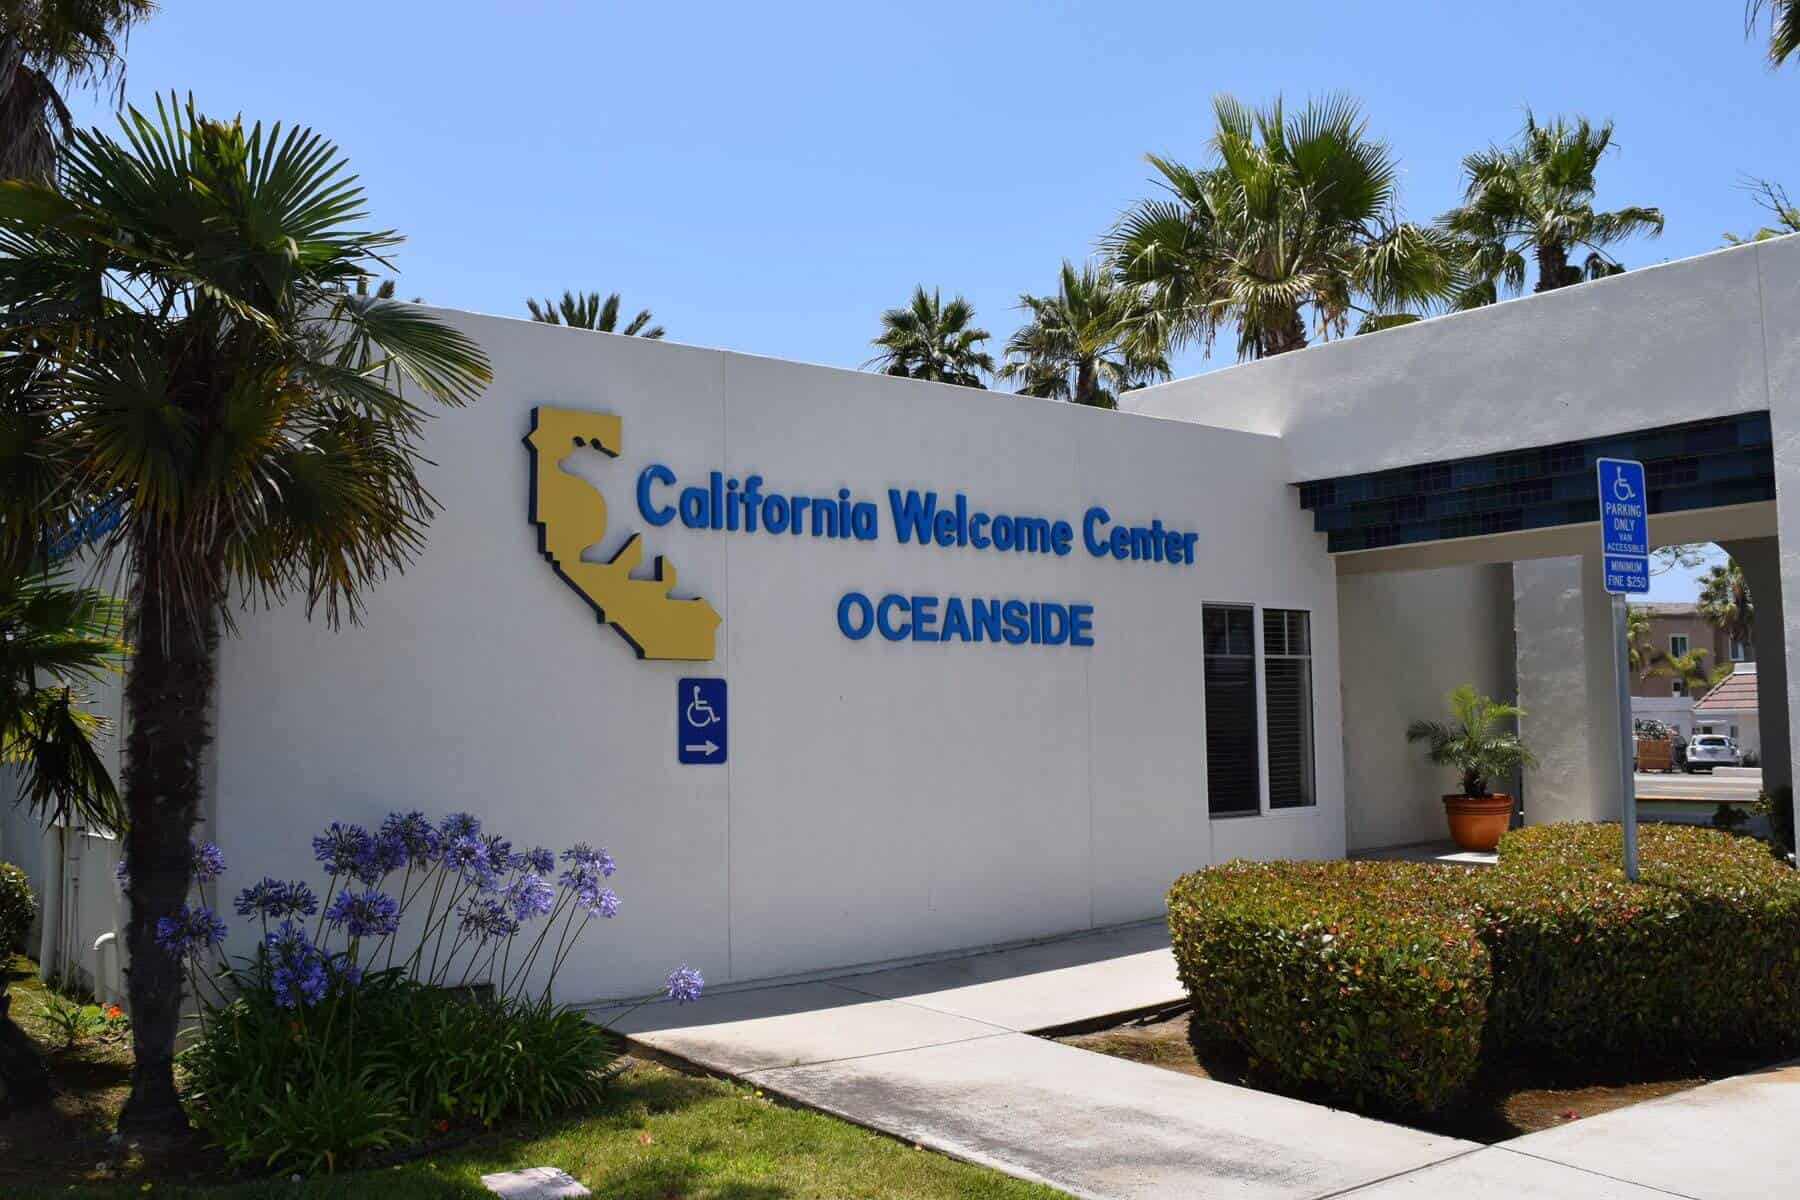 California Welcome Center -Oceanside - Entrance